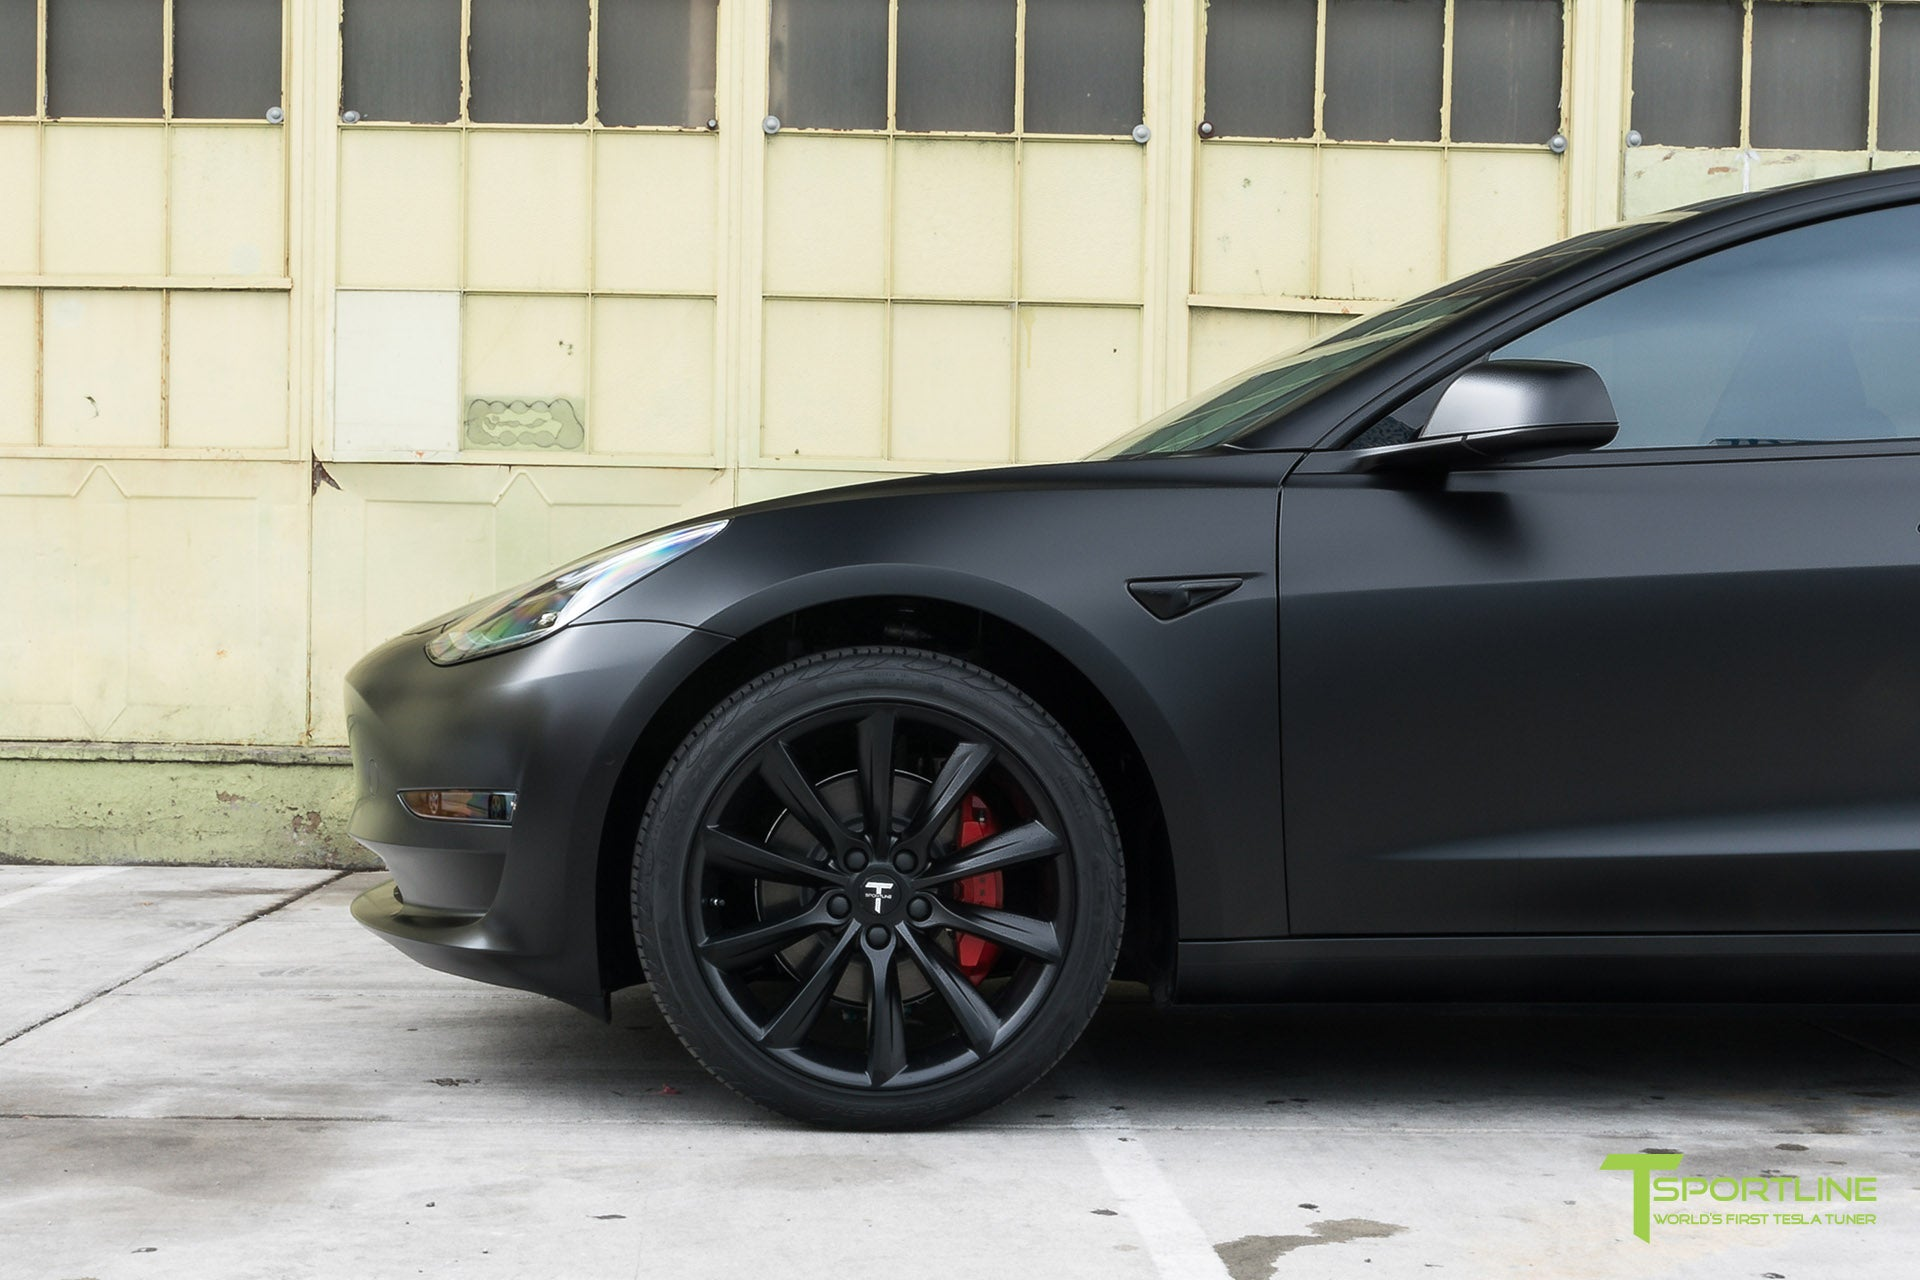 Satin Black Tesla Model 3 with Satin Black Chrome Delete, Window Tint, Matte Black 19 inch Turbine Style TST Wheels, and Lug Nut Cover by T Sportline 2